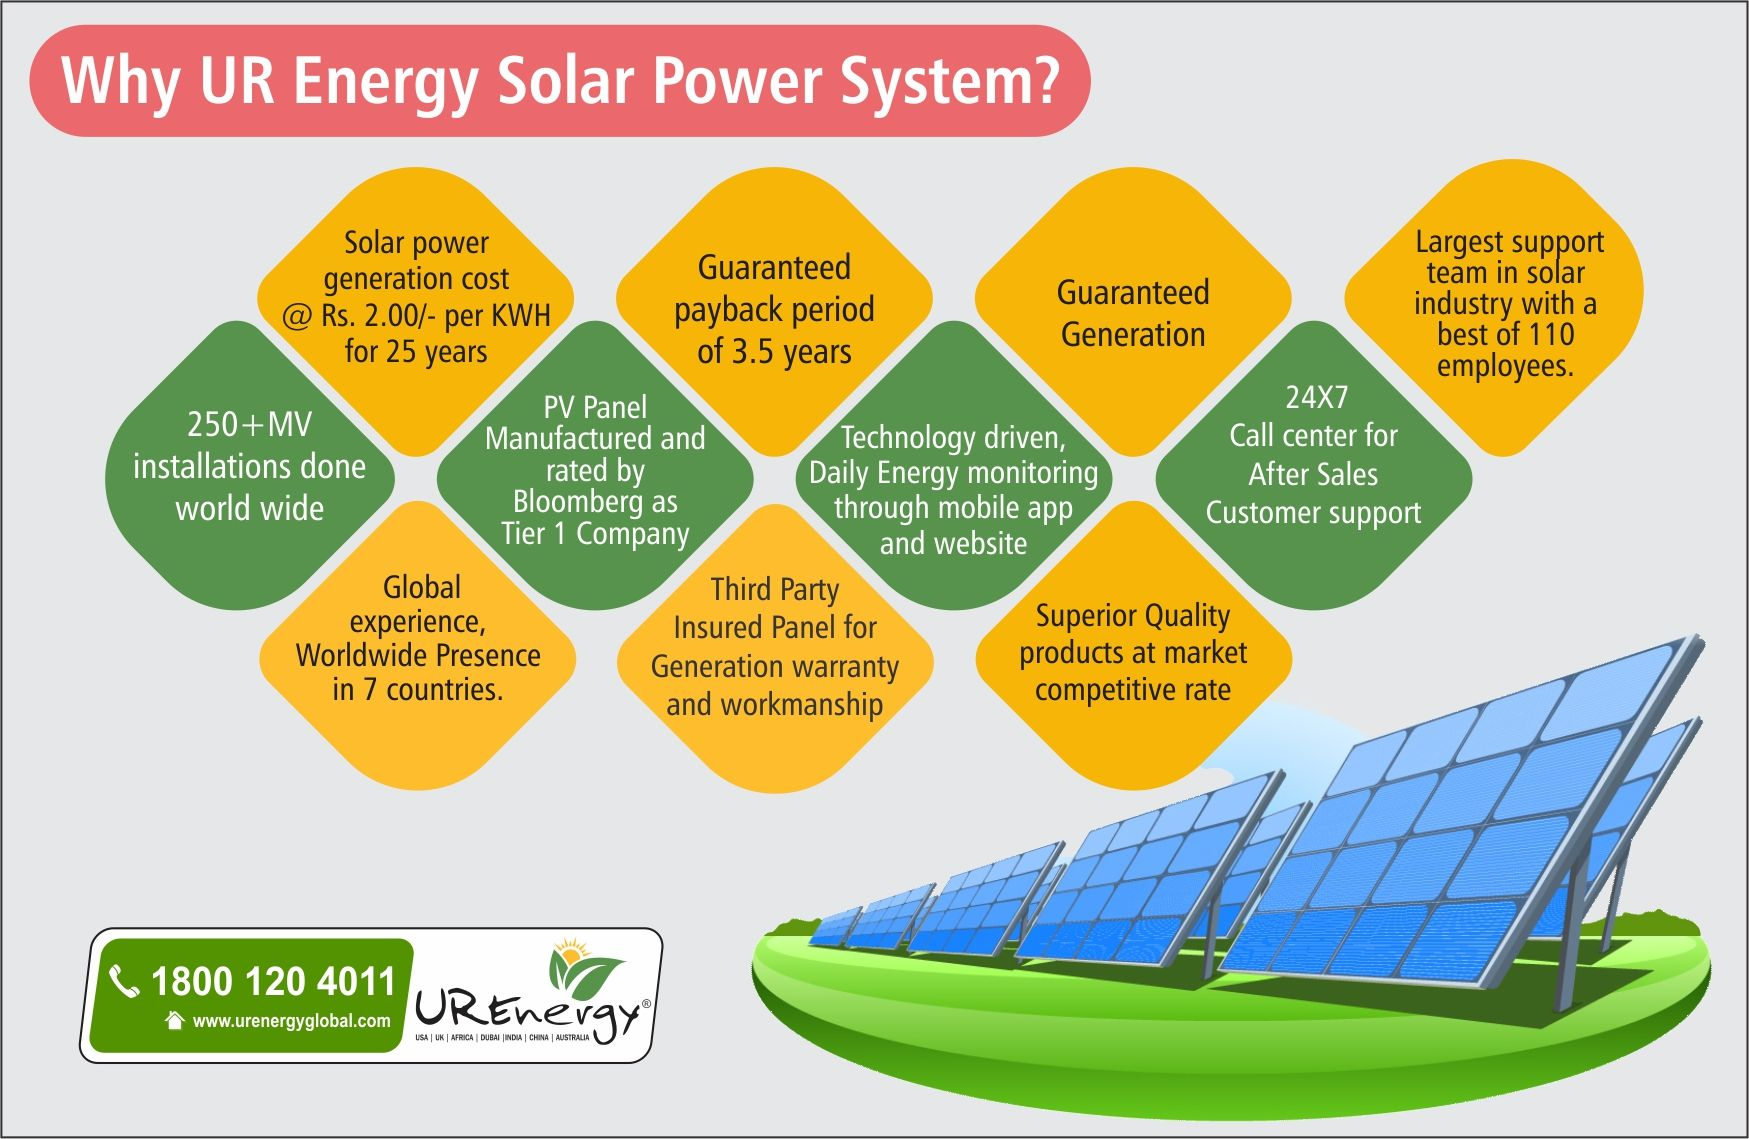 Rooftop Solar Panel Inverters Water Pump Solar Epc Gujarat India U R Energy Solar Energy Information Solar Solar Projects